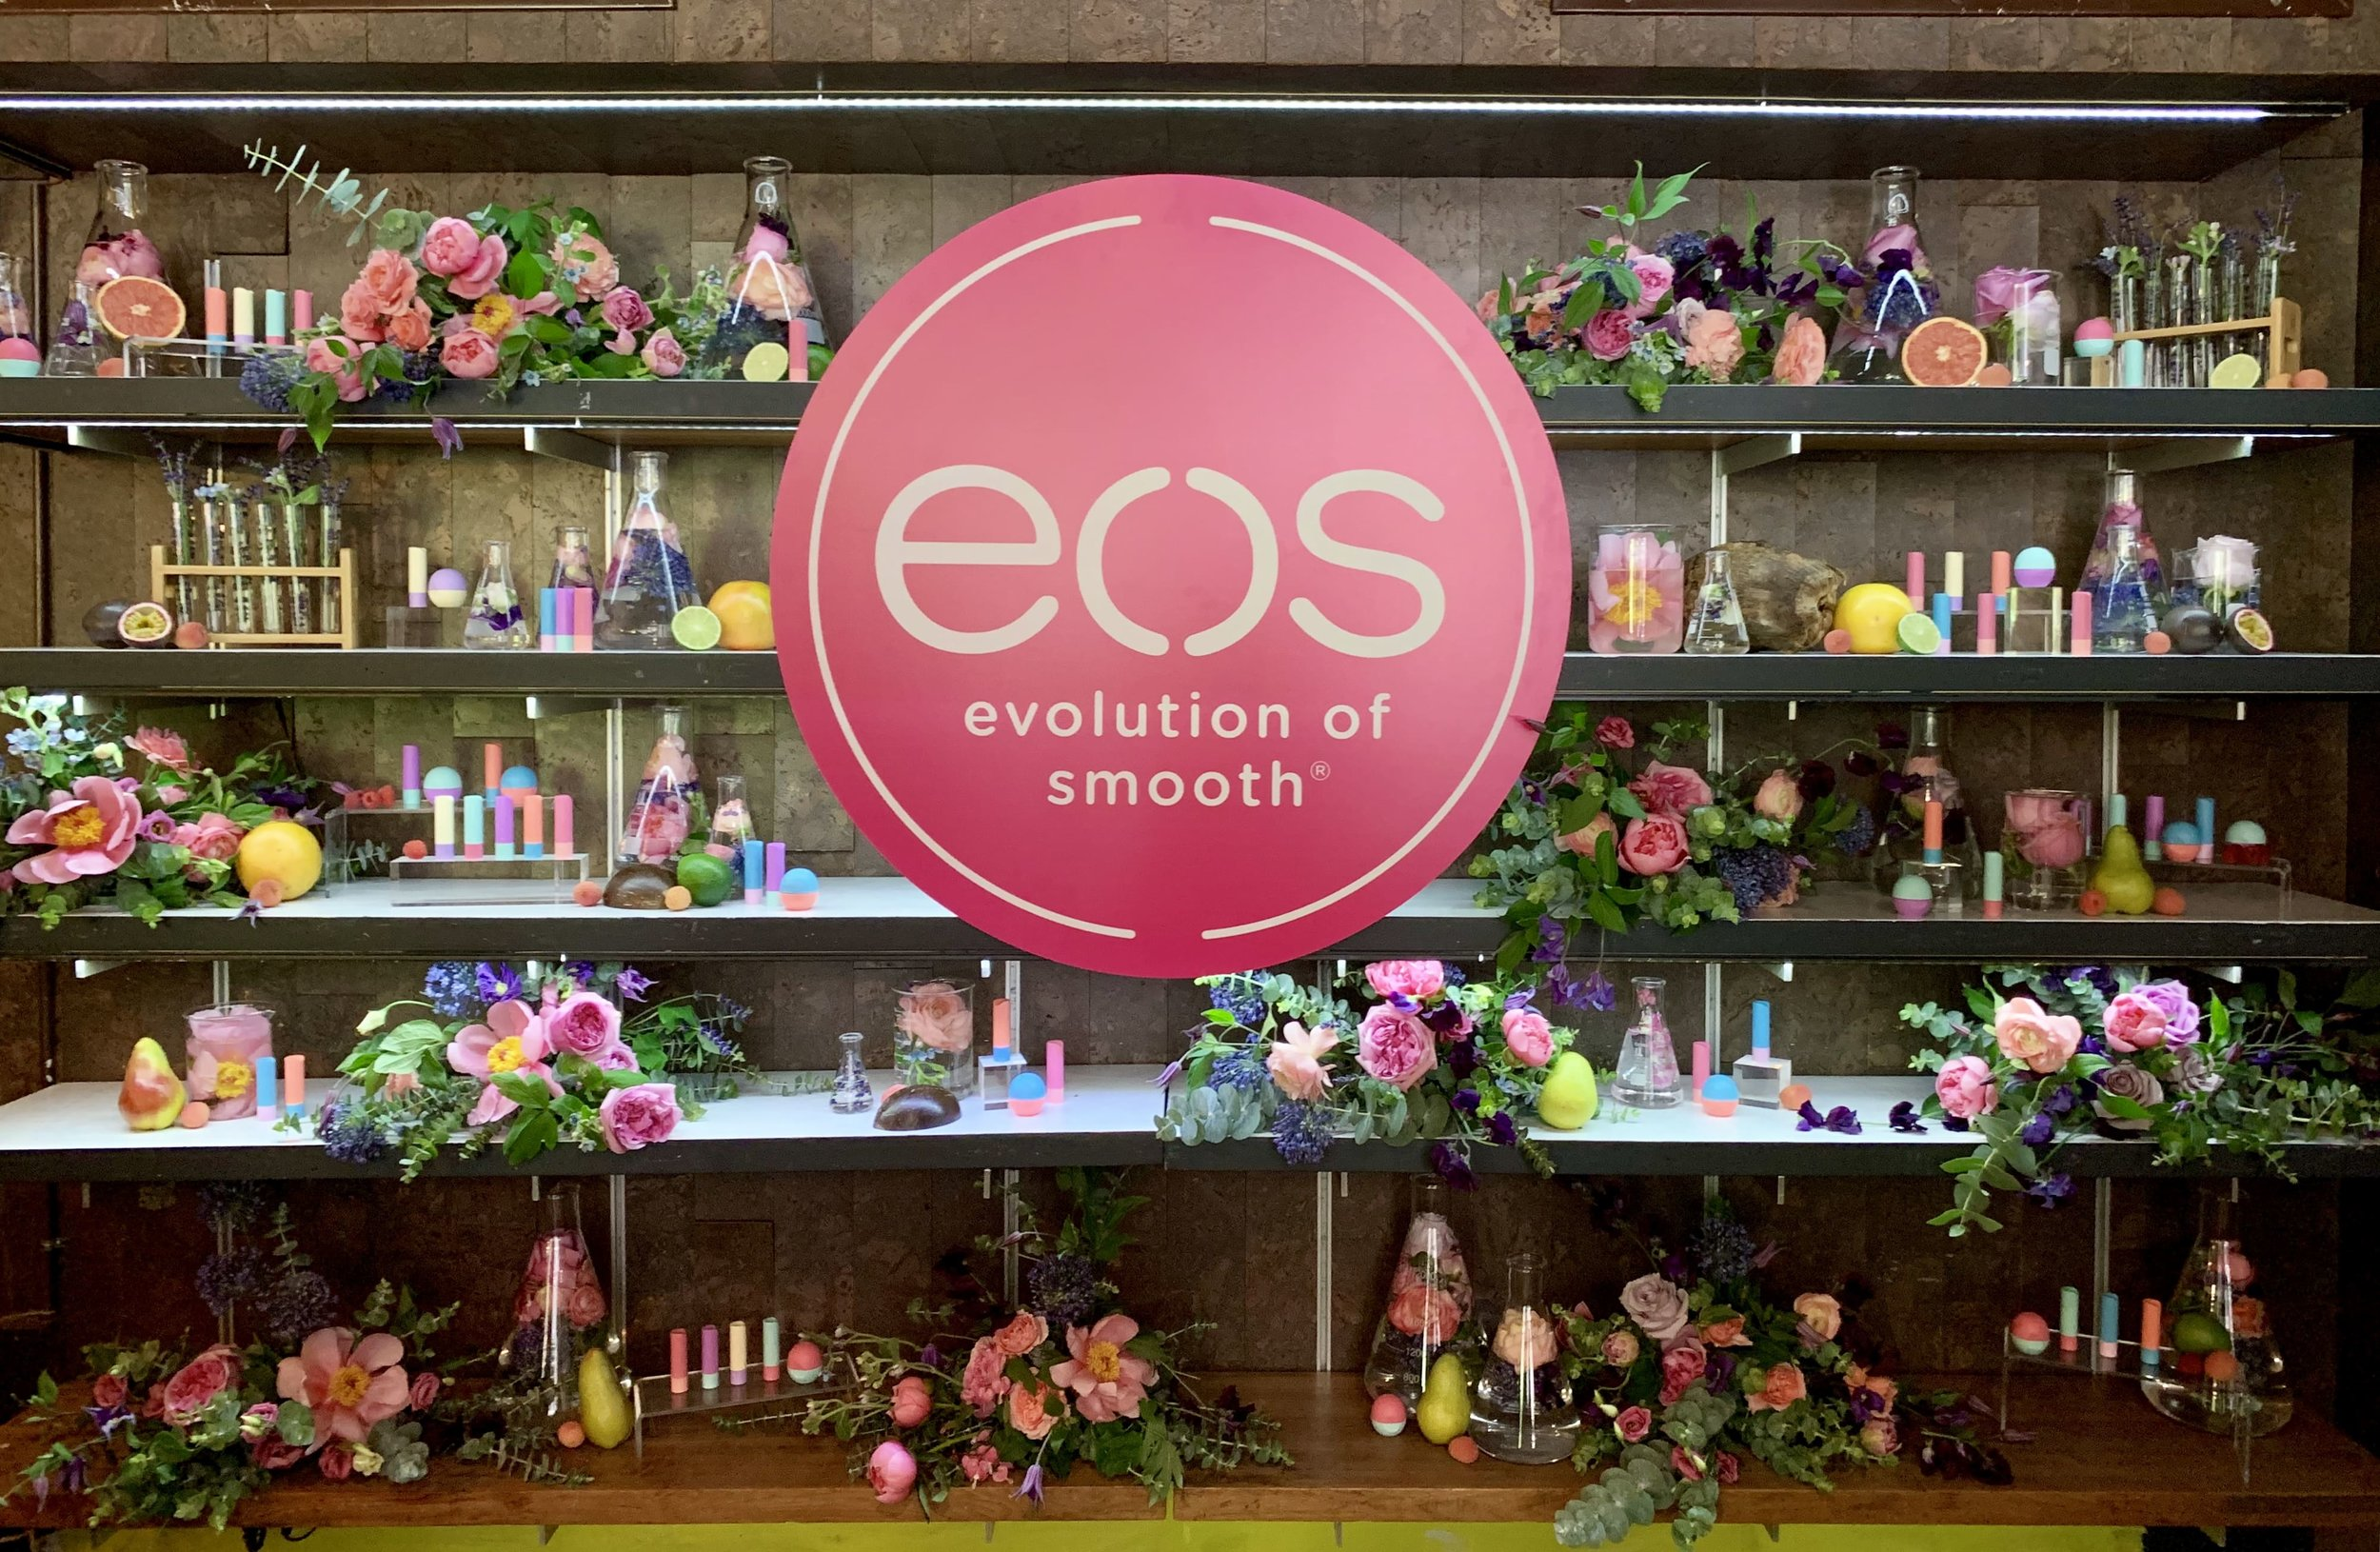 eos Product Display Shelving